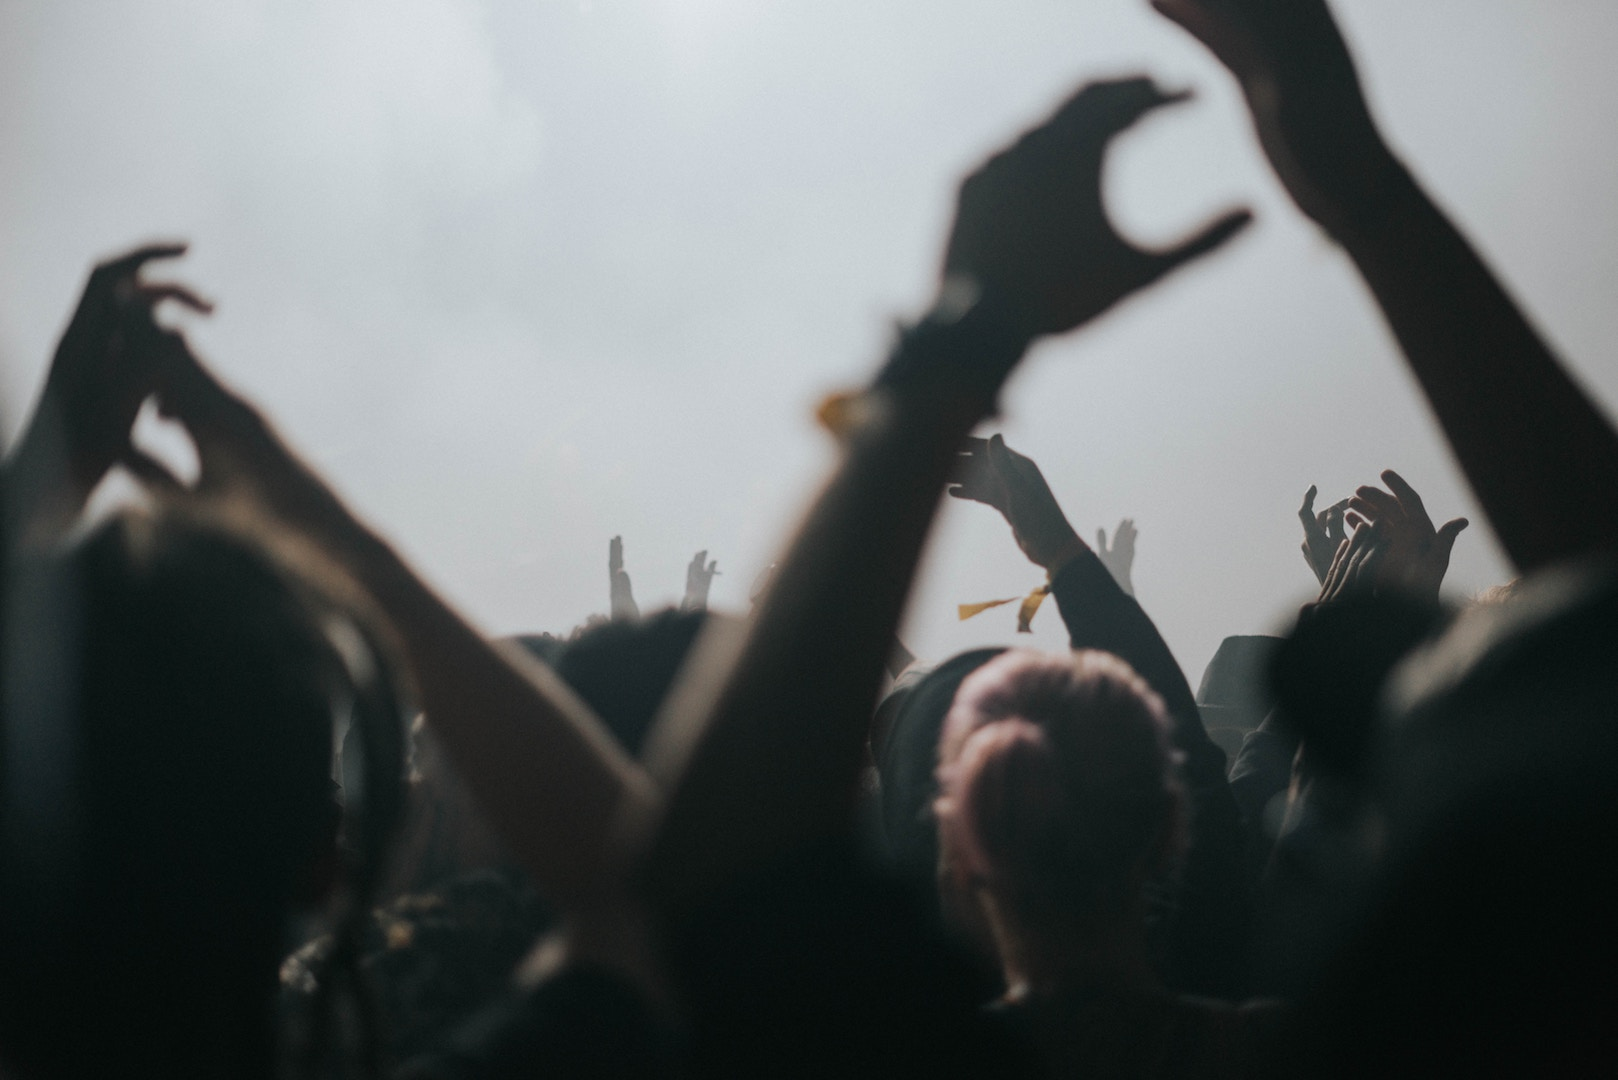 rave, Photo by Simon Boxus on Unsplash